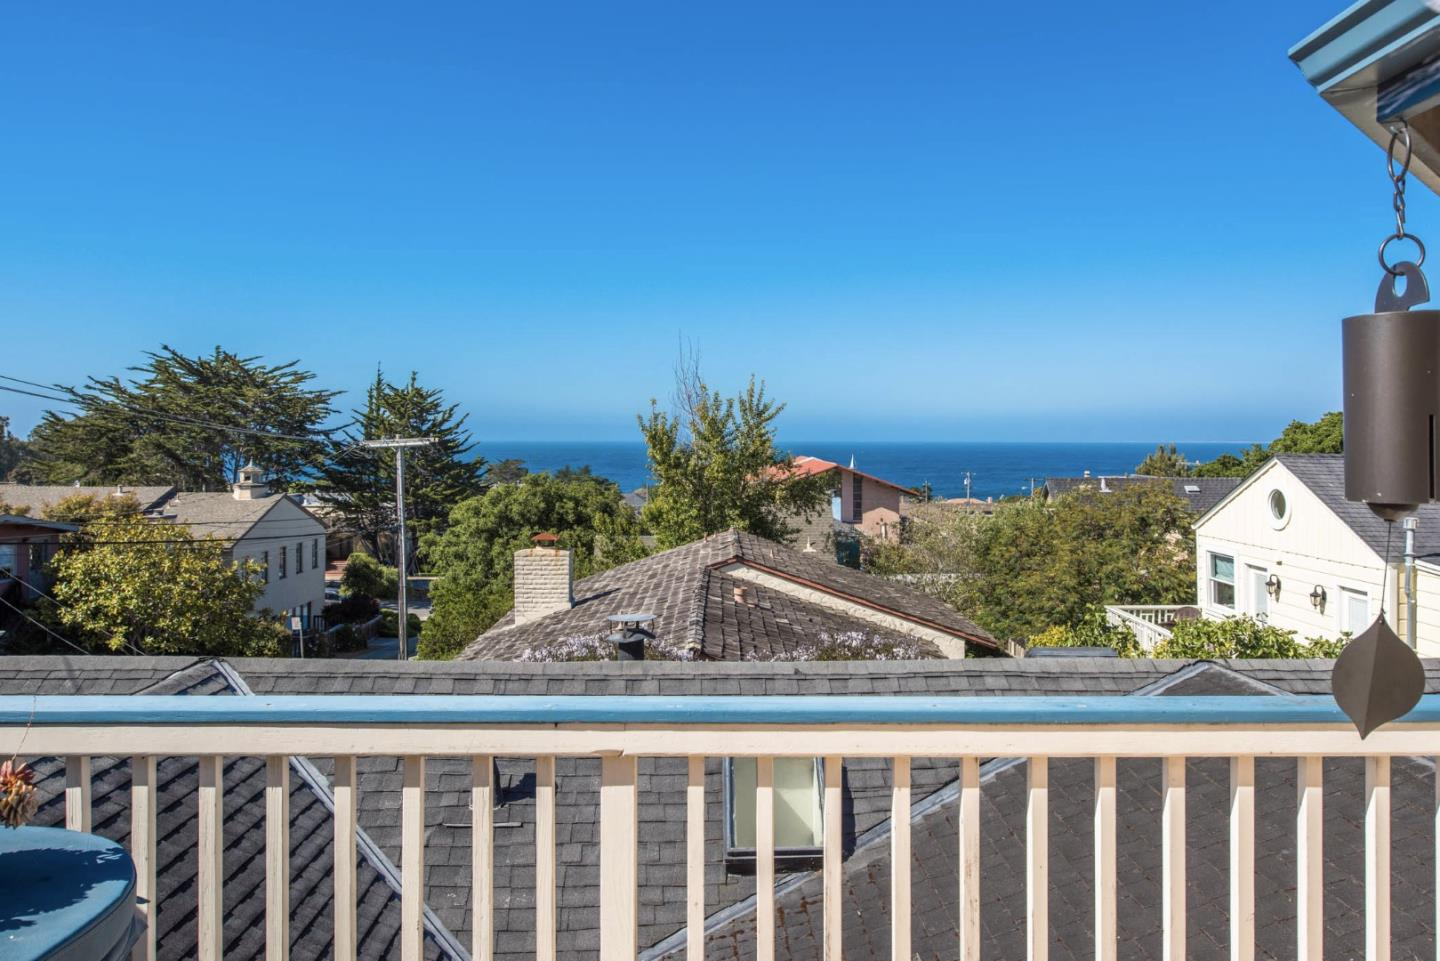 Additional photo for property listing at 211 10th Street  Pacific Grove, California 93950 United States